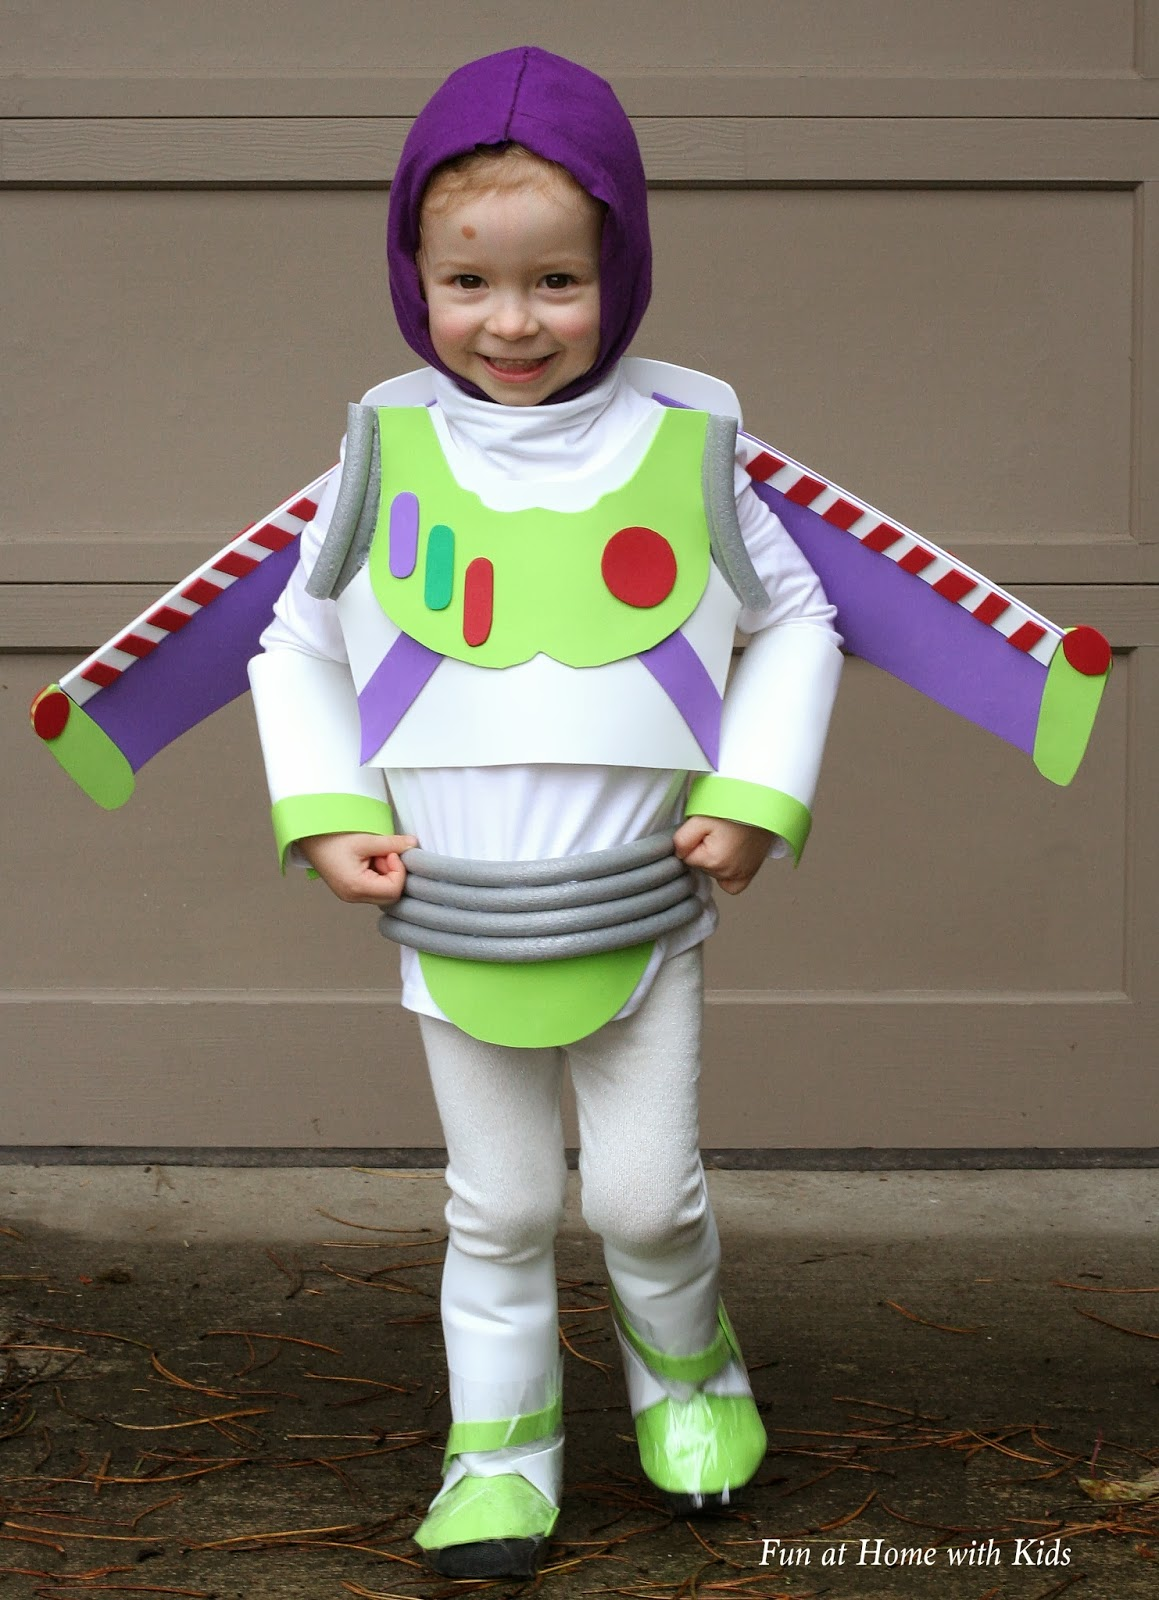 Diy kids buzz lightyear no sew halloween costume diy kids buzz lightyear no sew halloween costume from fun at home with kids solutioingenieria Choice Image